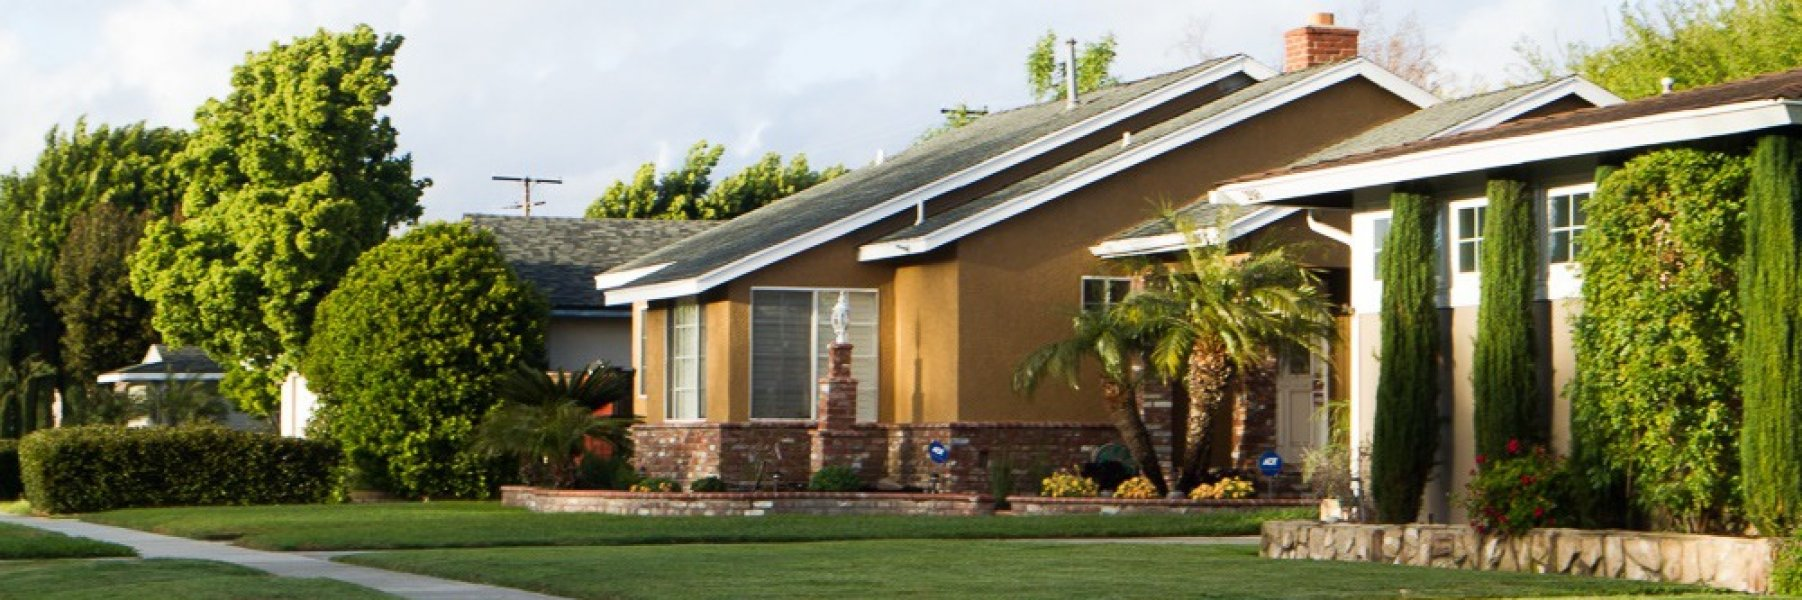 The Plaza is a community of homes in Long Beach California